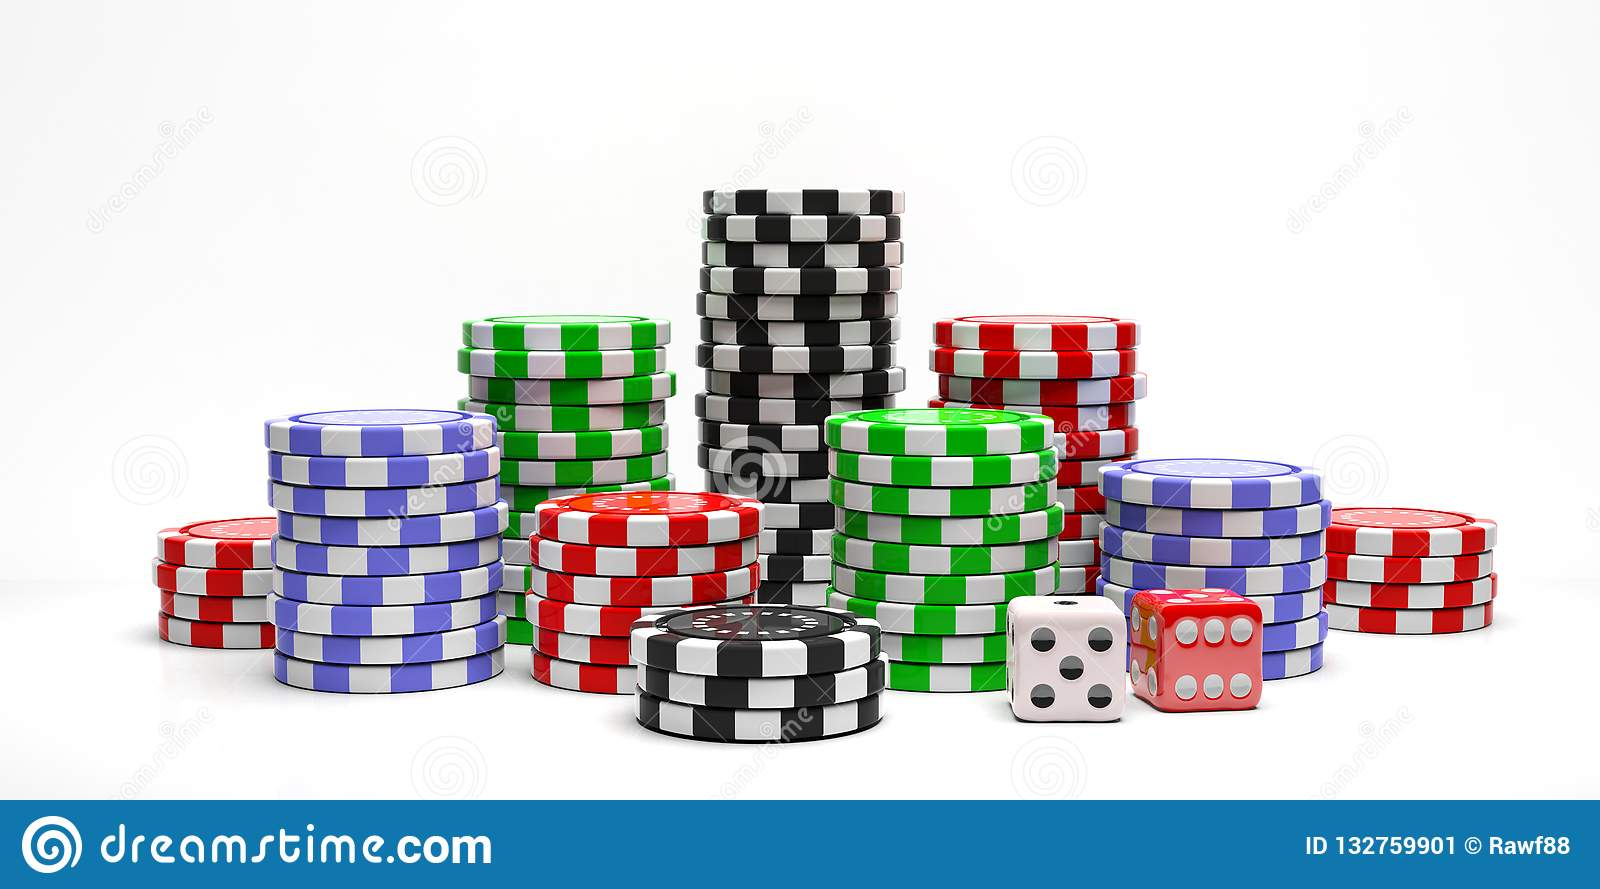 Poker chips piles and dice isolated on white background. 3d illustration